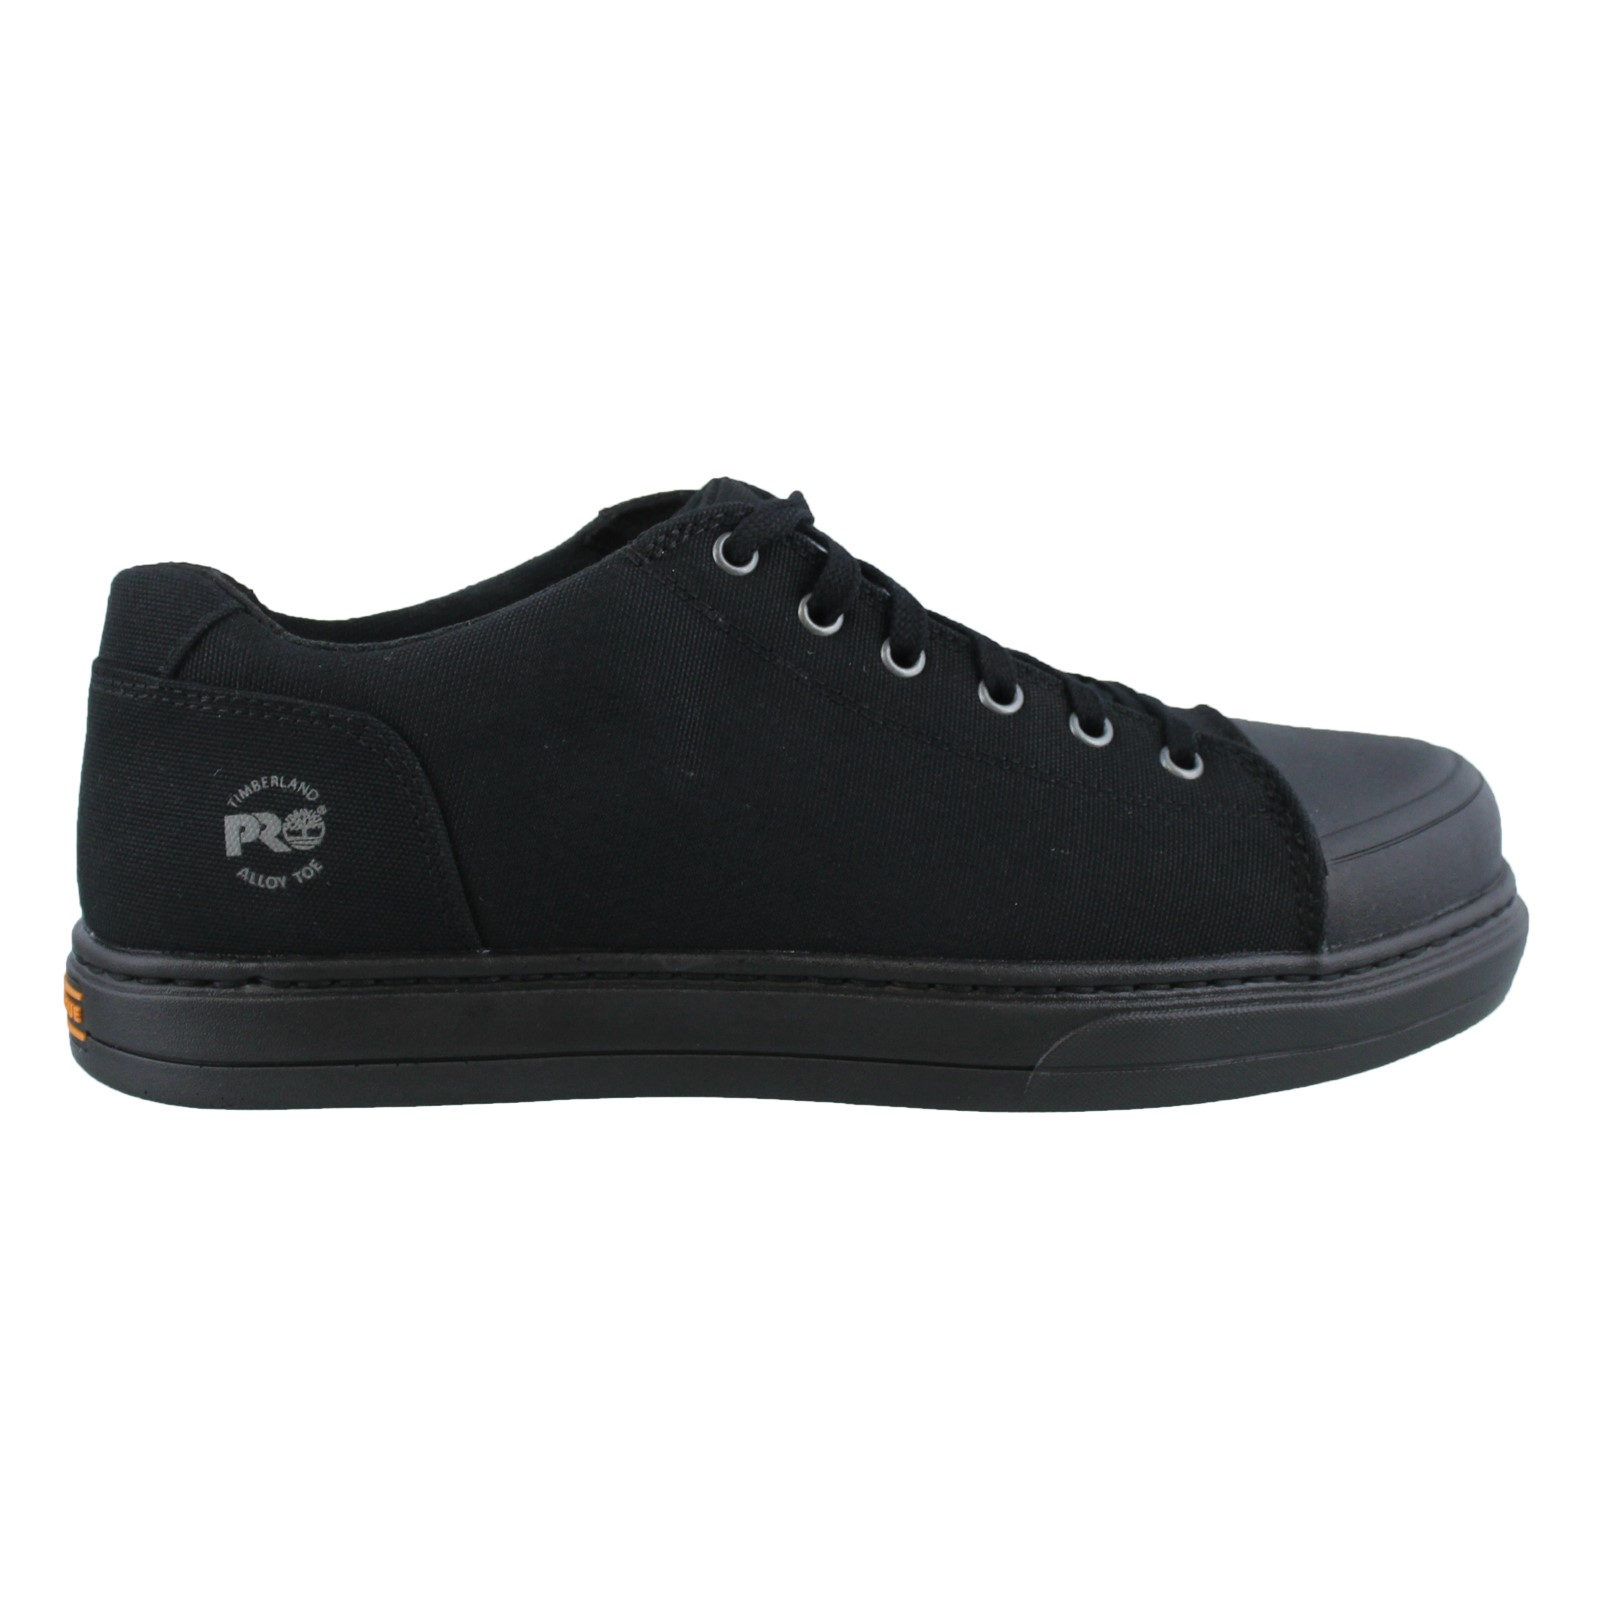 Men's Timberland Pro, Disrupter Low Lace up Work Shoes